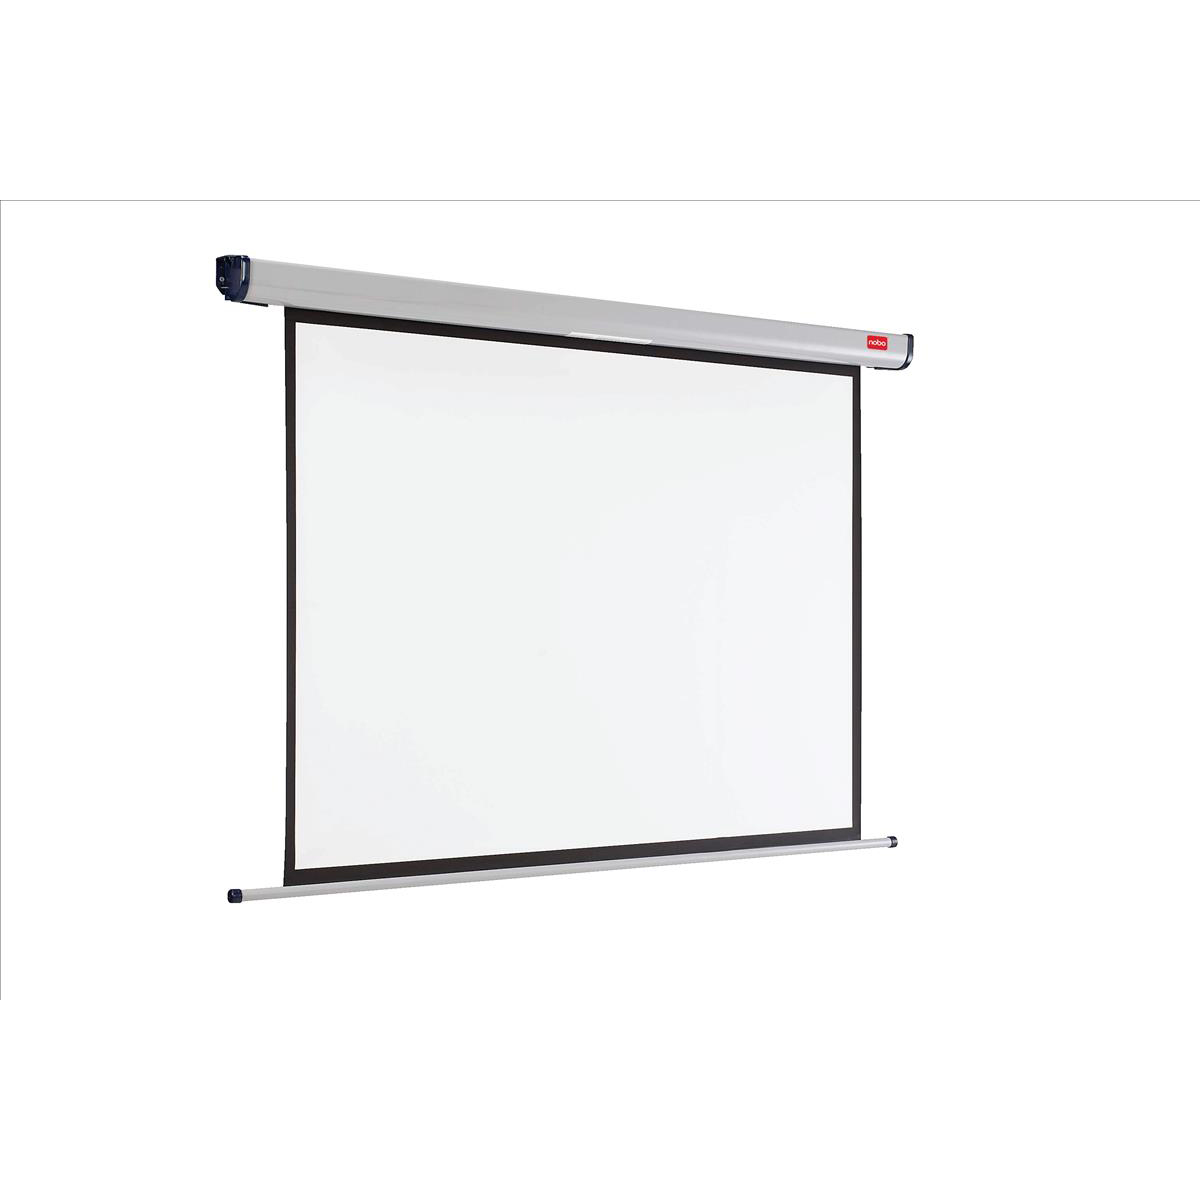 Screens Nobo Wall Widescreen Projection Screen W2400xH1600 Ref 1902394W